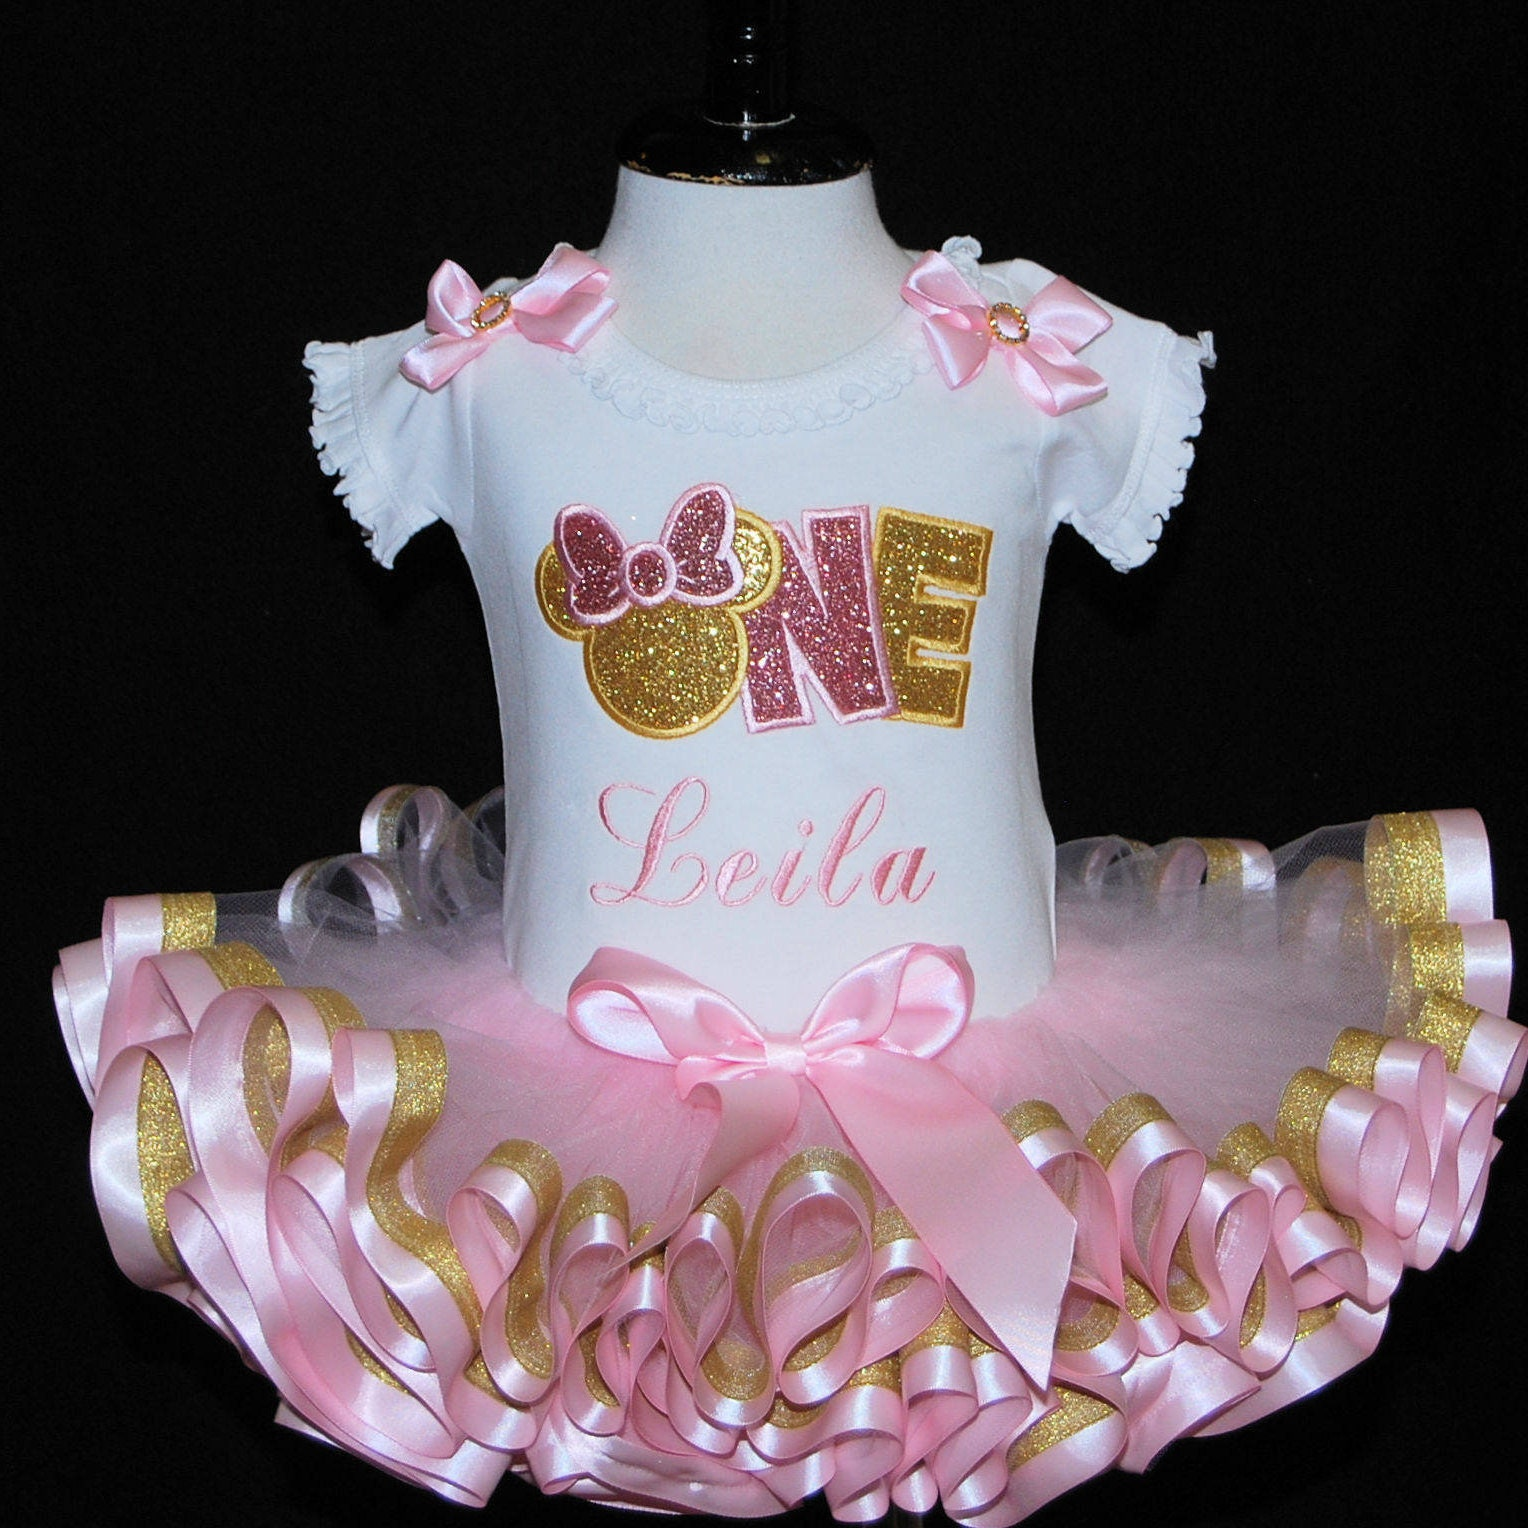 baby girl 1st birthday outfit, personalised, smash cake outfit girl, first birthday outfit girl, minnie mouse 1st birthday outfit